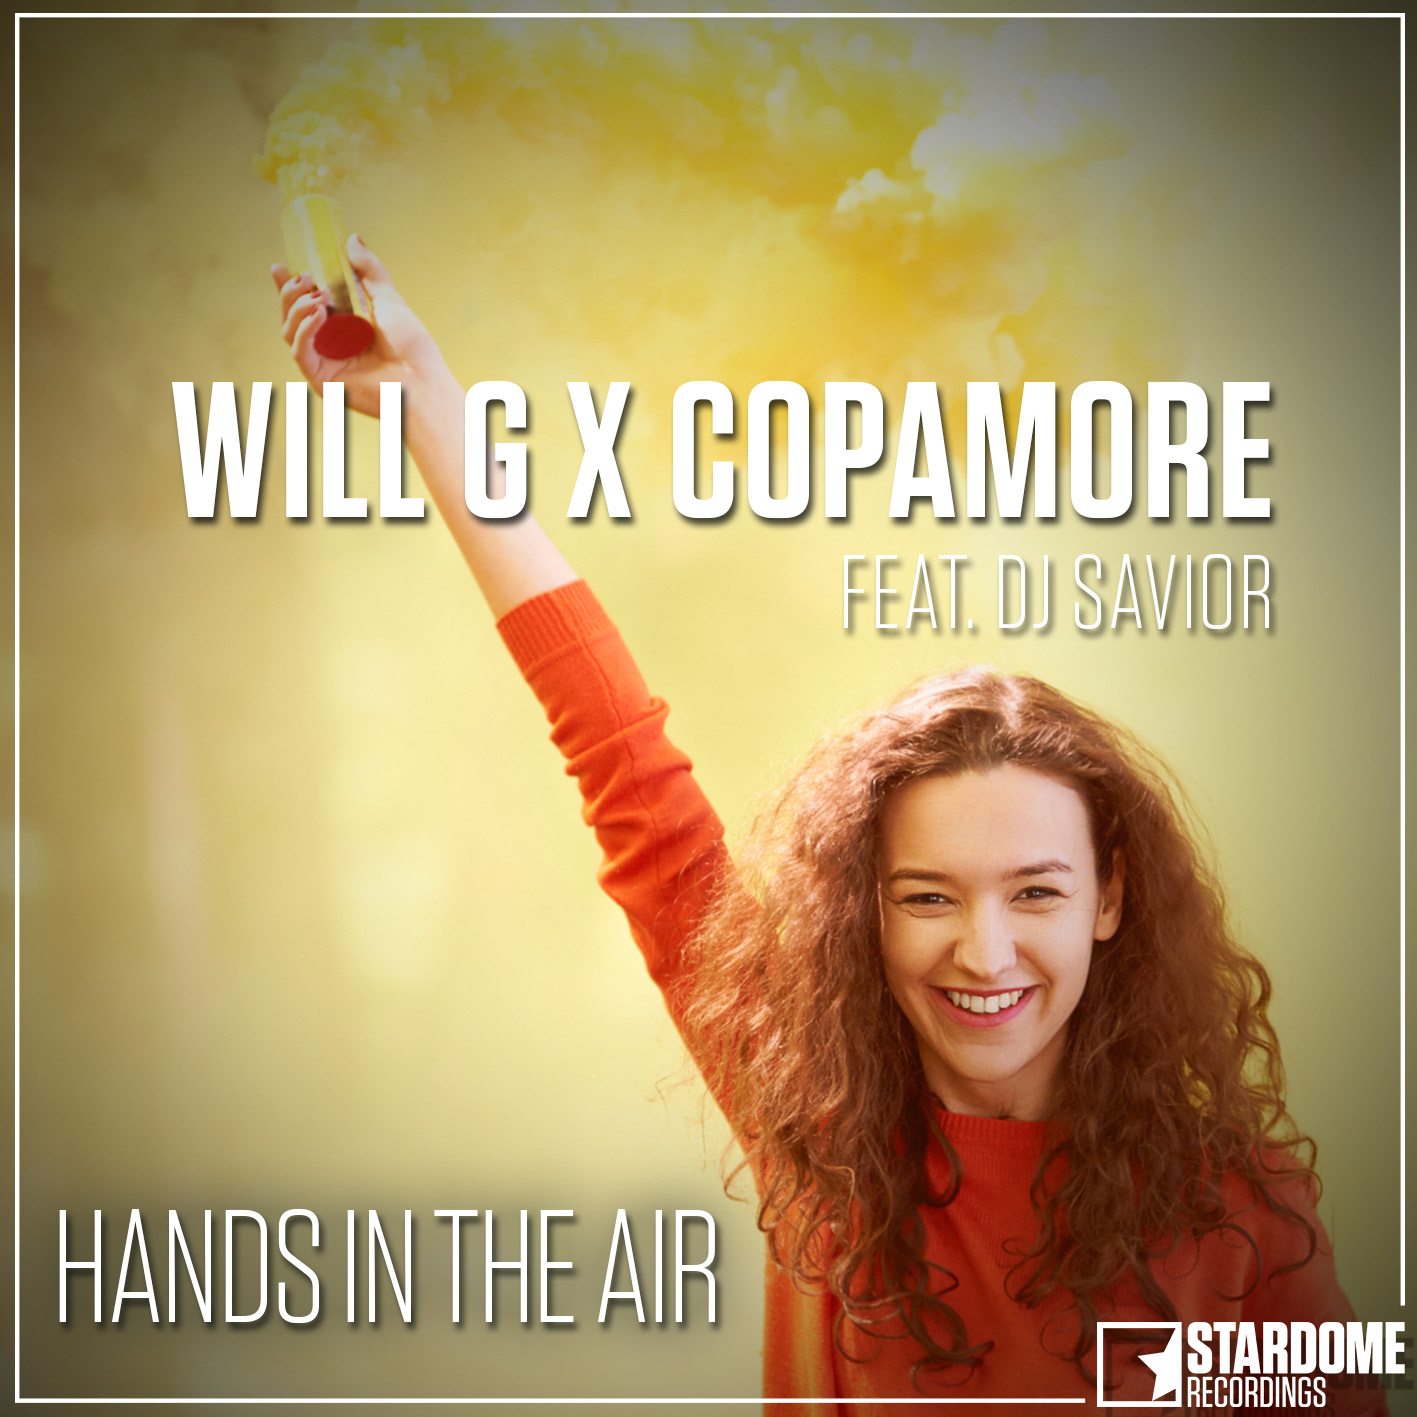 WILL G X COPAMORE FEAT. DJ SAVIOR-Hands In The Air